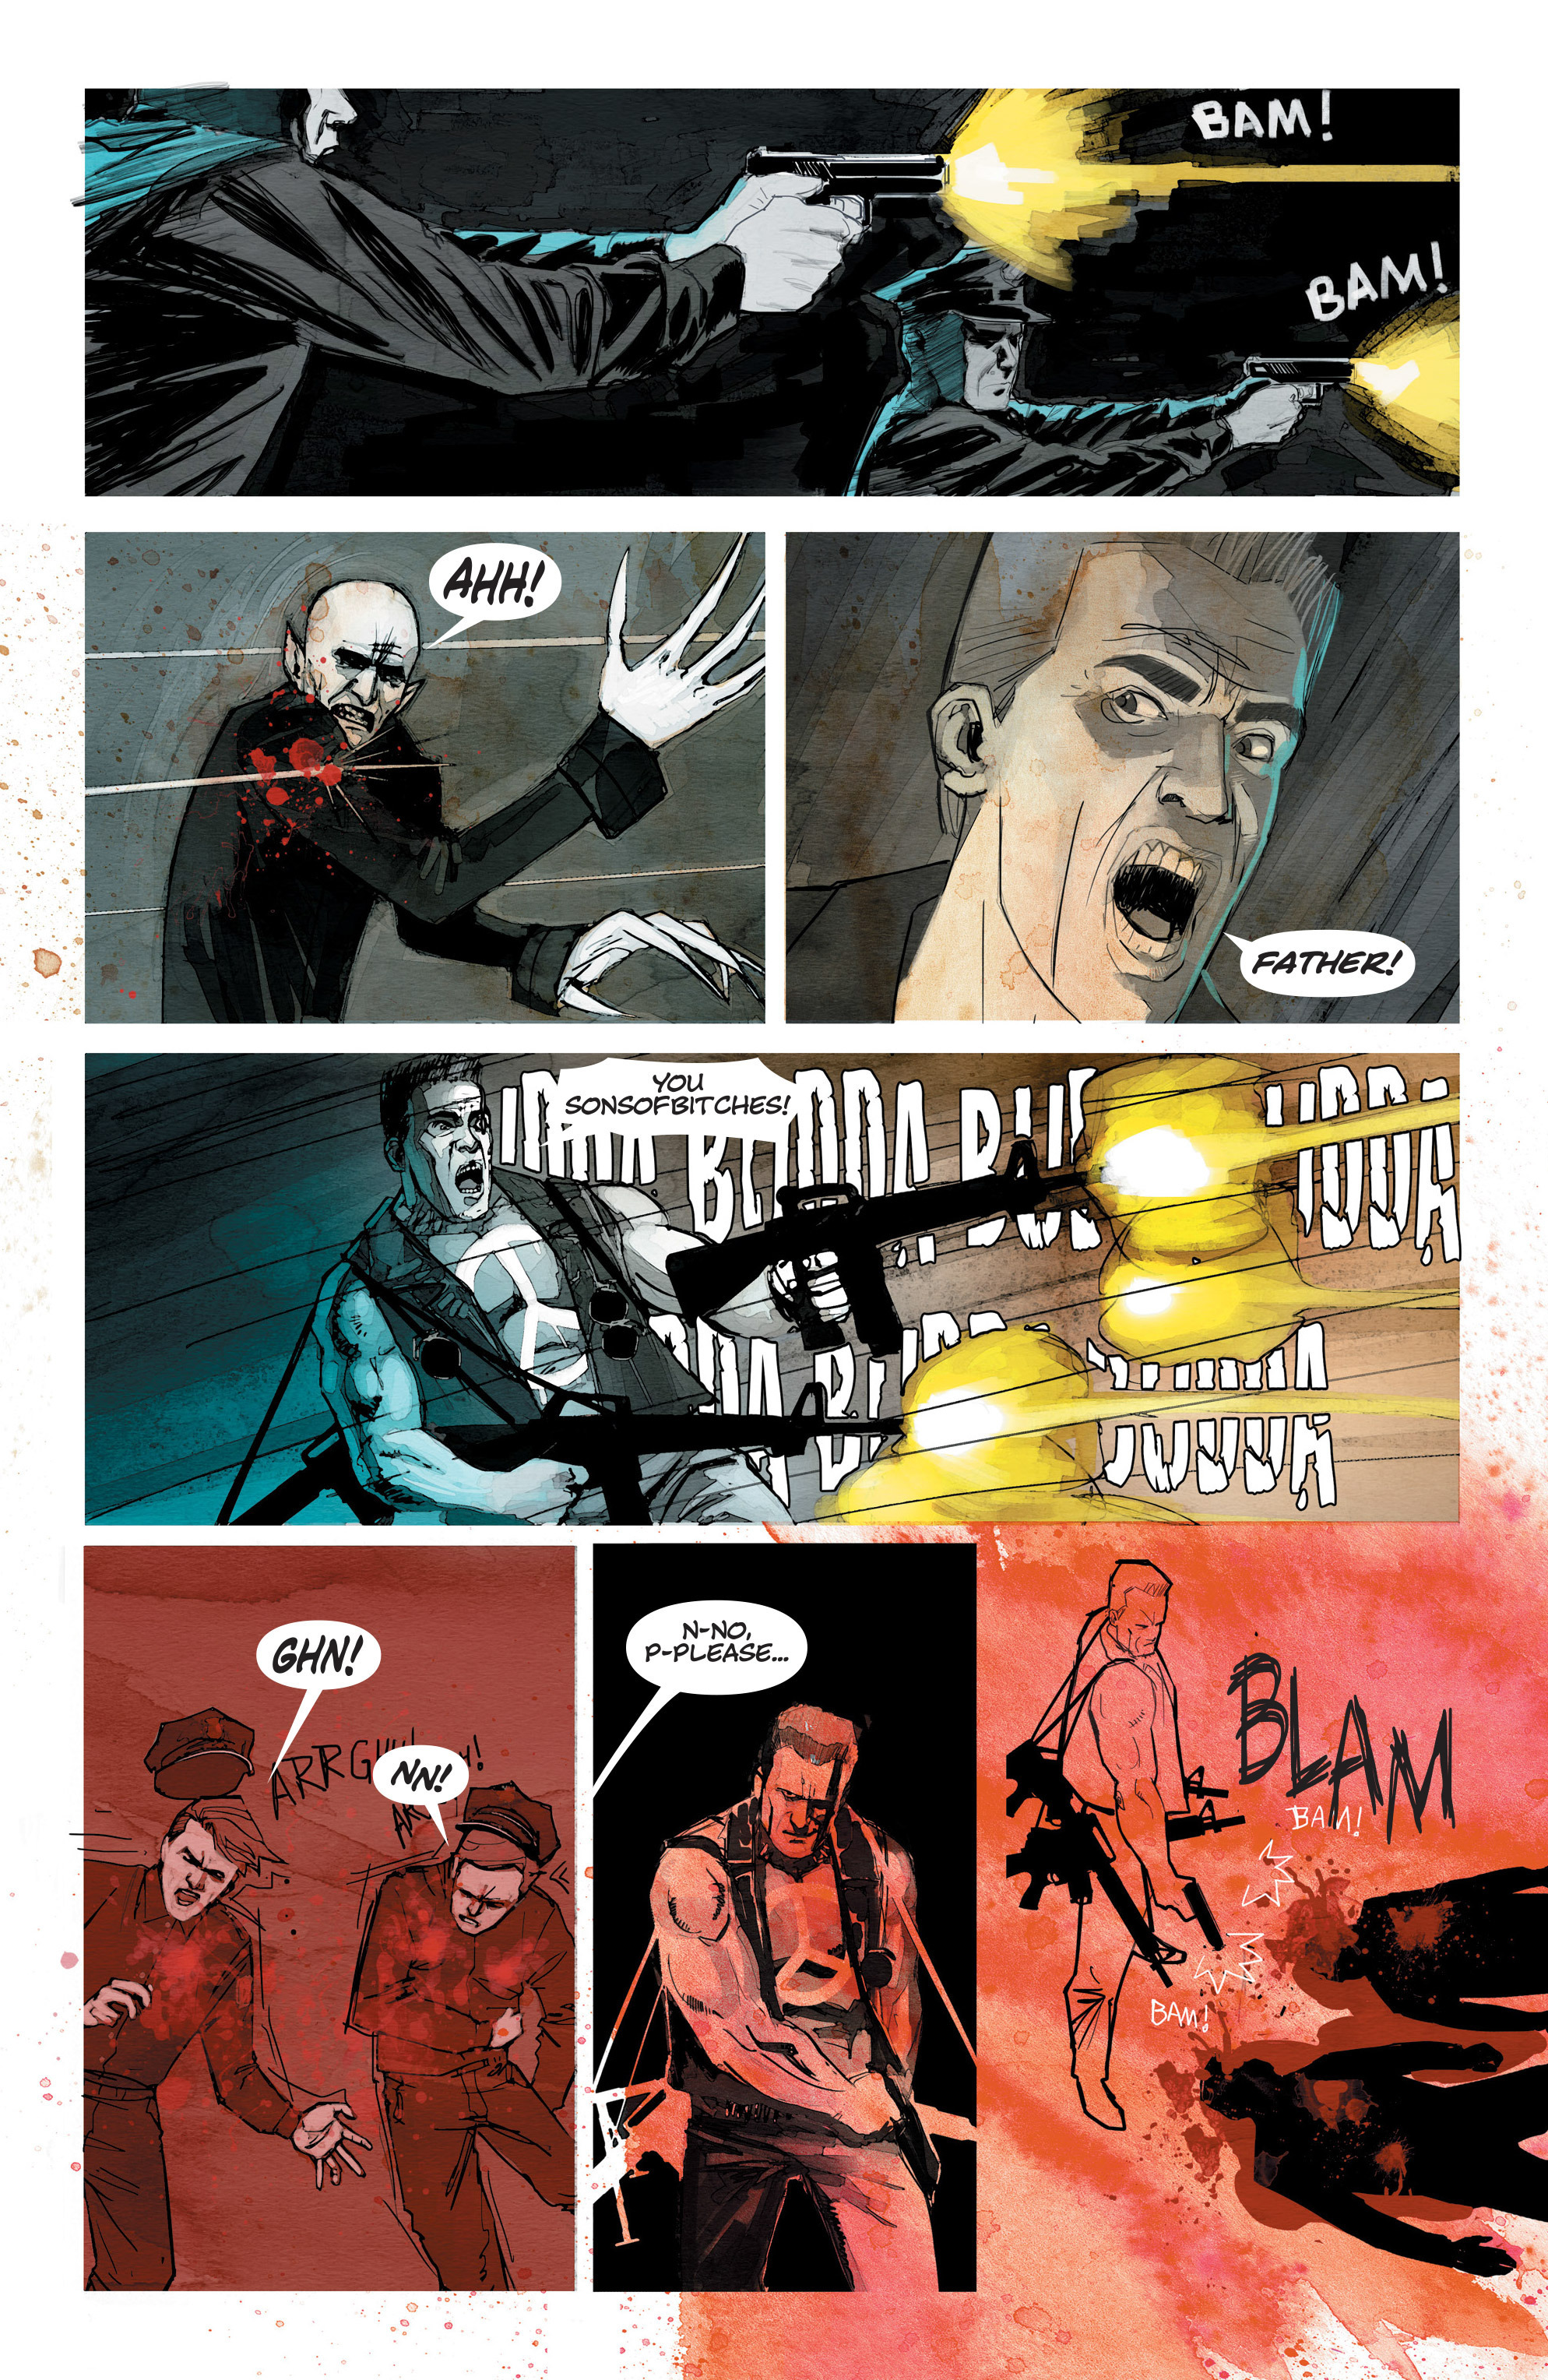 Read online C.O.W.L. comic -  Issue #10 - 21